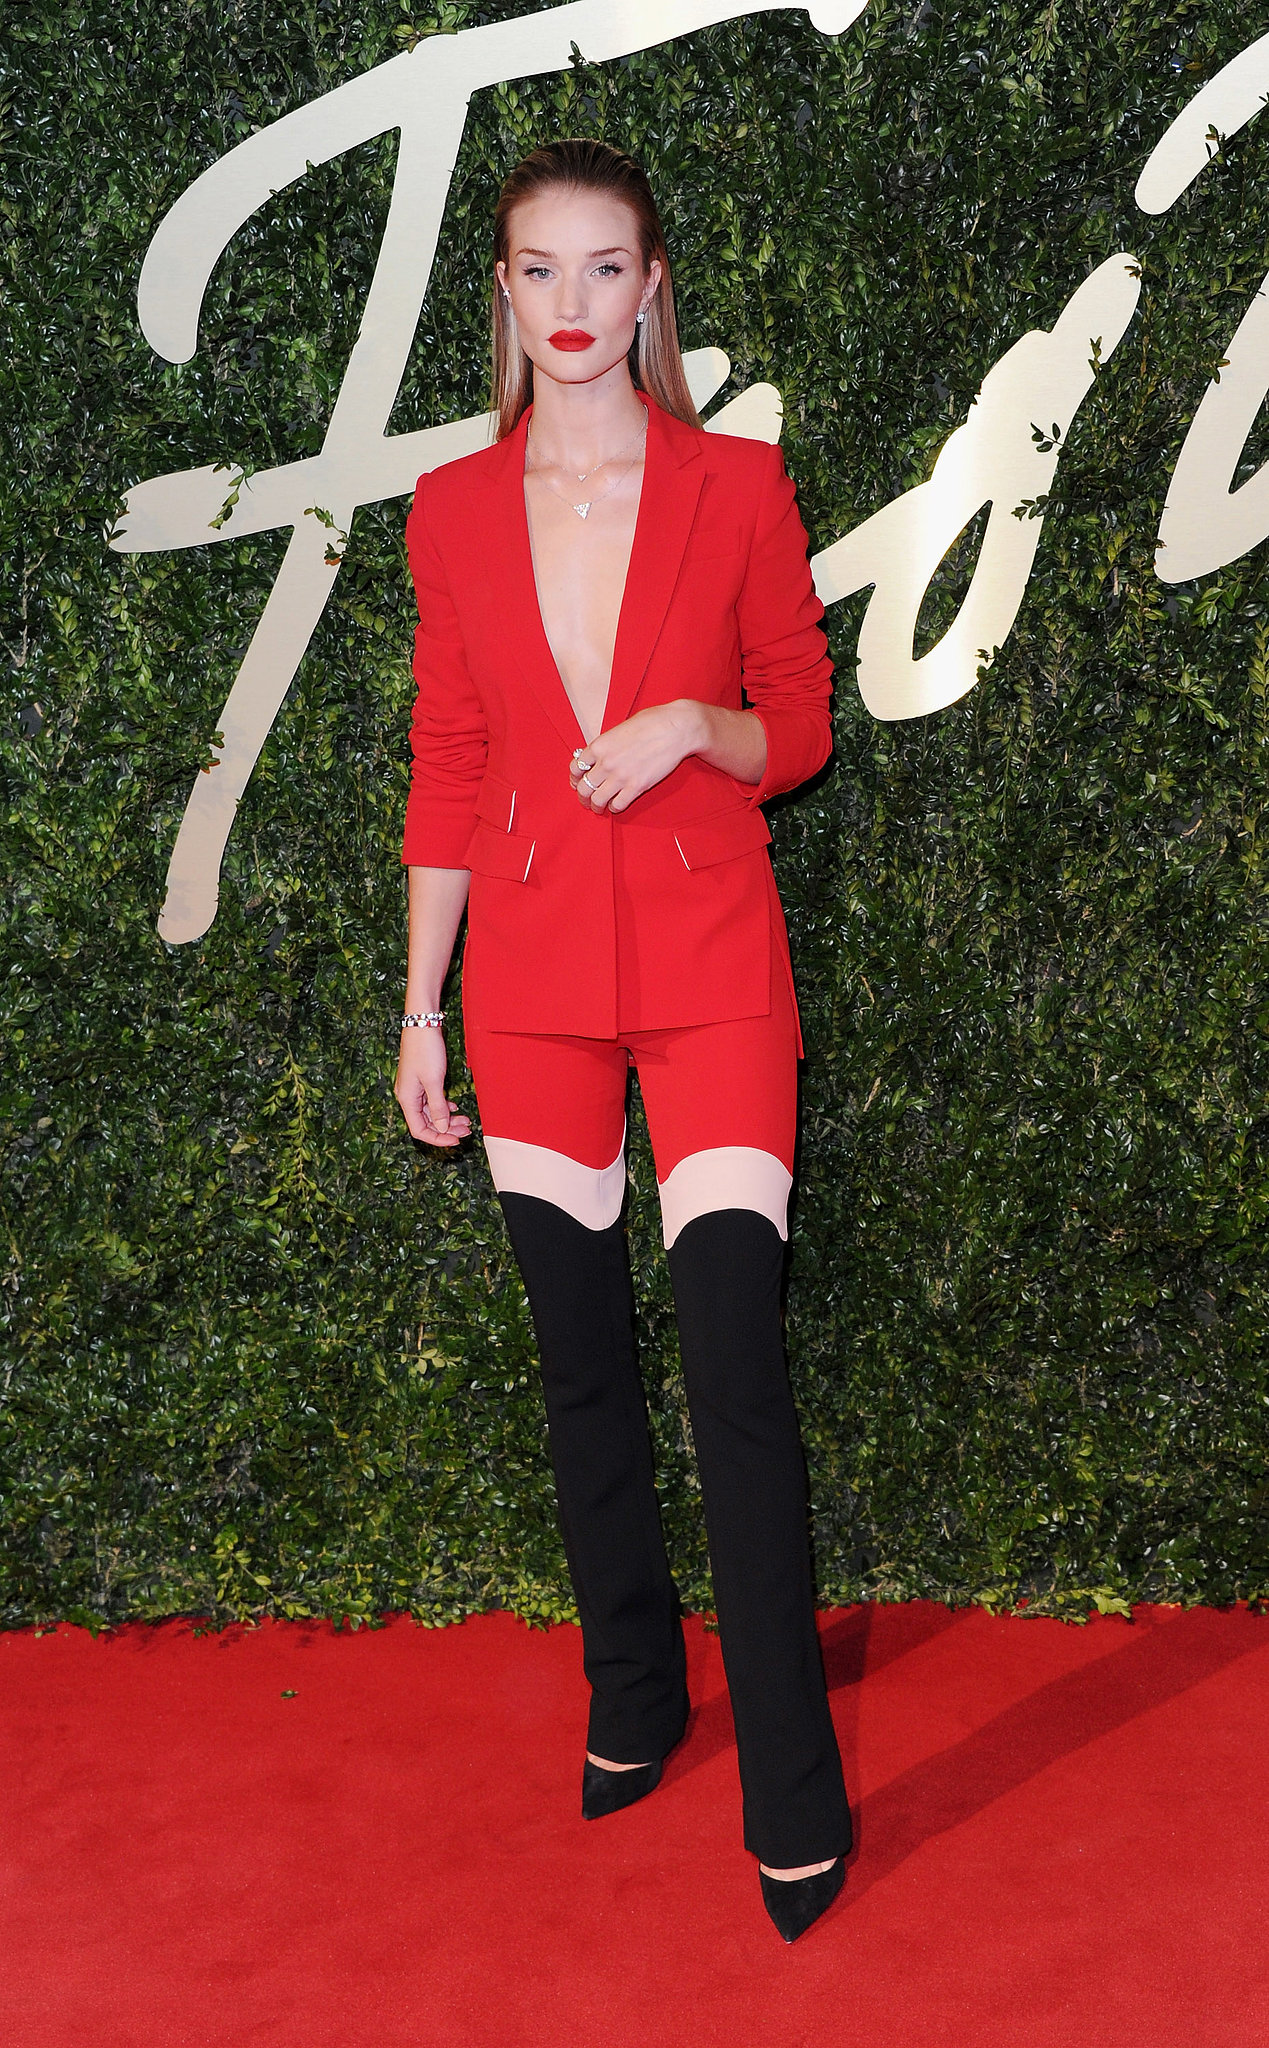 Rosie Huntington-Whiteley dared to be bold in a red ensemble with thigh-high boots.